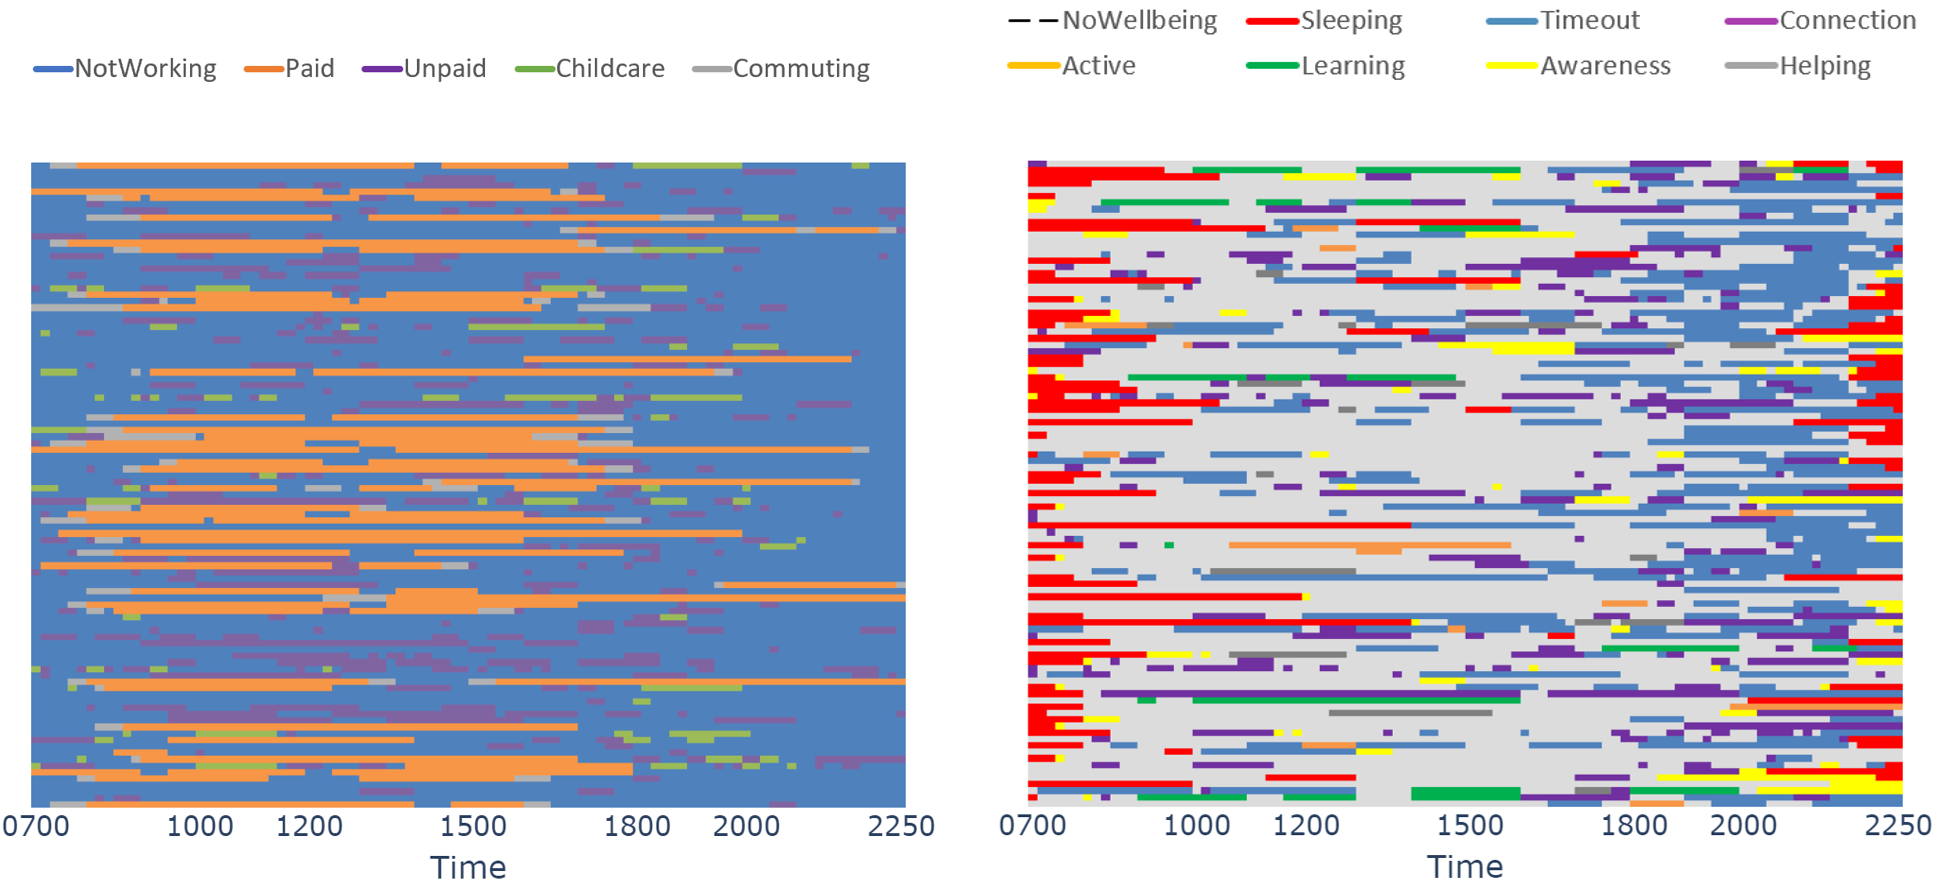 Box chart showing aggregated working time activity for 50 randomly chosen individuals to the left and Box chart showing aggregated well-being activity for 50 randomly chosen individuals to the right.